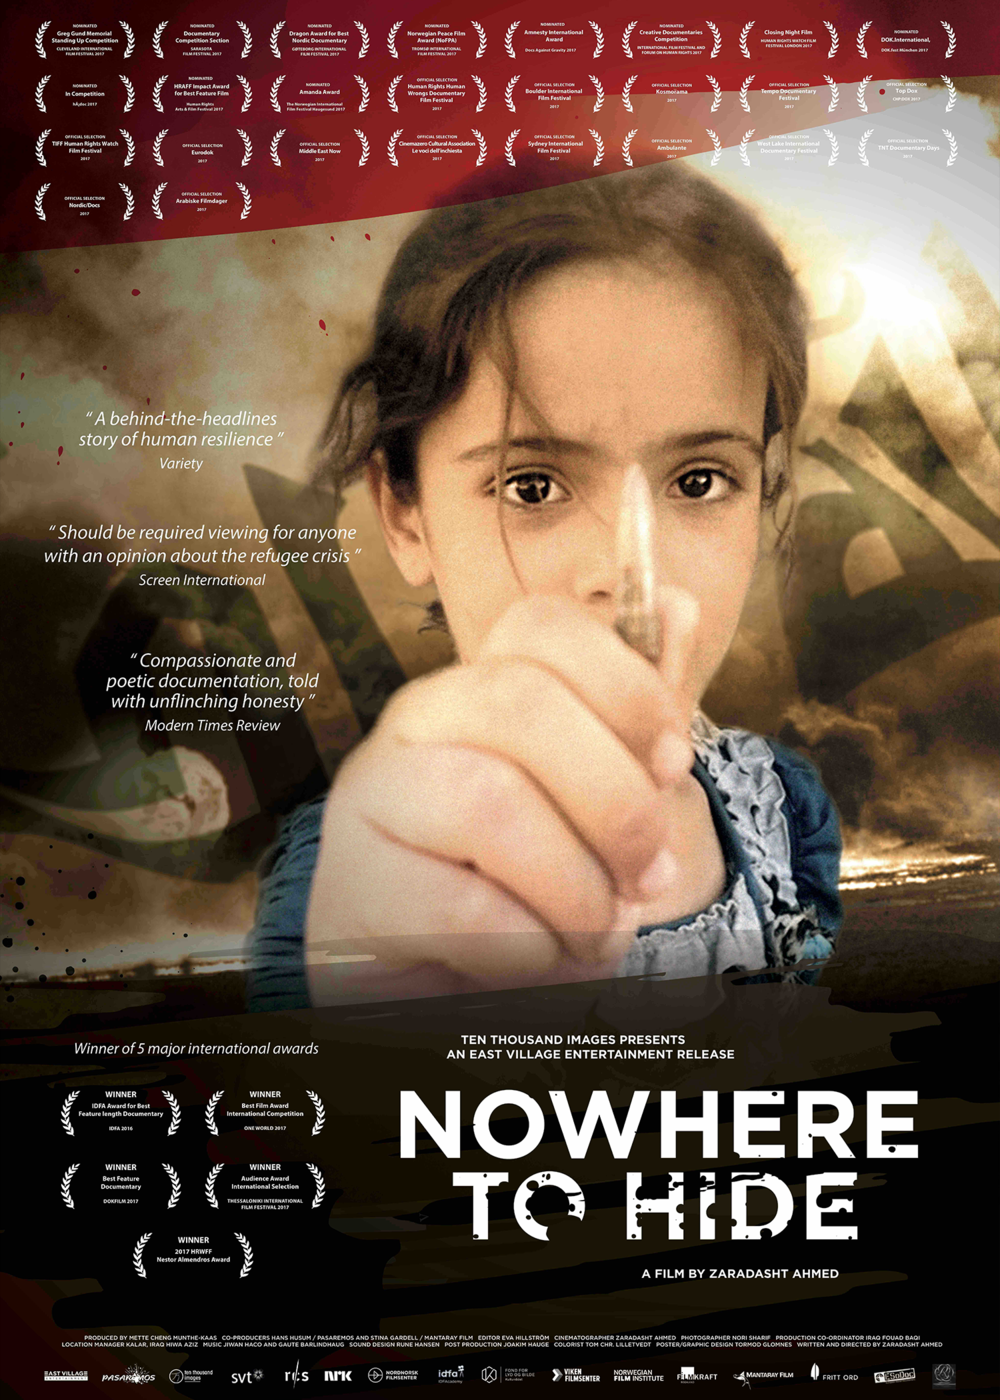 "Nowhere to Hide - 2016, Norway/Sweden, 86 min, in Arabic with subtitlesAfter the Americans left Iraq in 2011, a male nurse named Nori Sharif was asked to report on the state of his country, providing unique access into one of the world's most dangerous and inaccessible areas – the ""triangle of death"" in central Iraq. Working in the local hospital in Jalawla, he filmed the victims of war over the course of five years. The shocking images show families torn apart, maimed and damaged by the violence in Iraq. And every day more arrive, as the conflicts continue and life is disrupted by attacks over and over again. Often it isn't even clear who the adversaries are. But the threat level increases, and when the Iraqi army pulls out in 2013 because of militant groups, the population flees – accompanied by the majority of the hospital staff. Sharif is one of the few who remain. When IS advances on Jalawla in 2014 and finally takes over the city, Sharif continues to film. Then he too has to flee at a moment's notice, to bring himself and his family to safety."